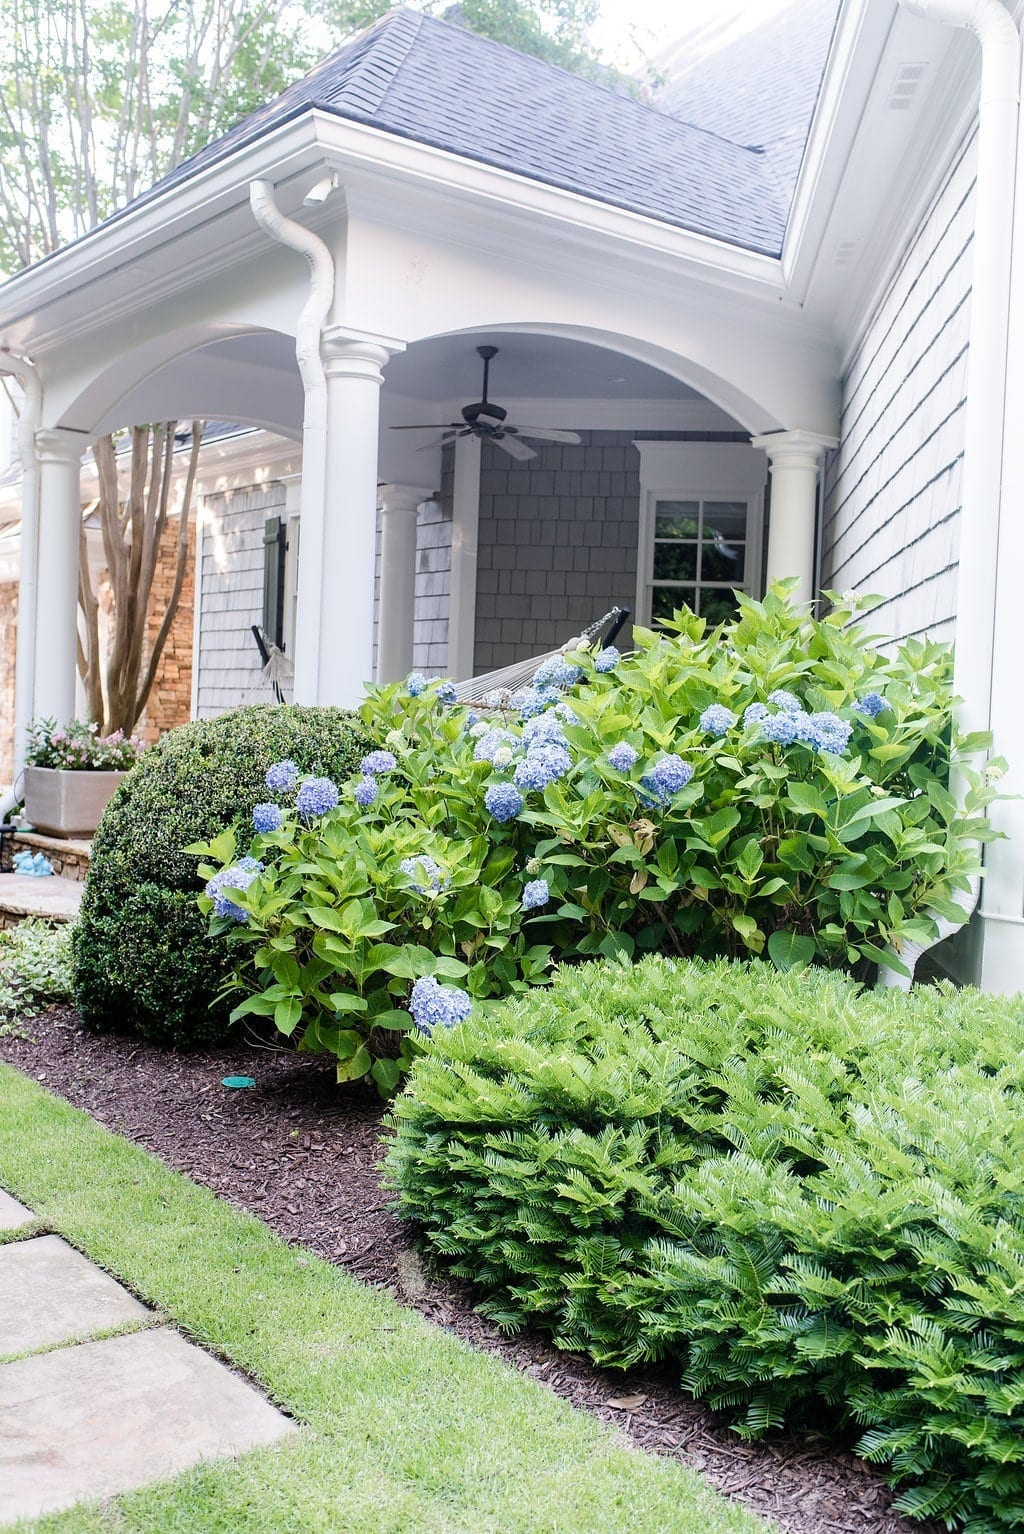 Where to plant hydrangea. Atlanta home with cedar siding and blue Endless Summer hydrangea bush.